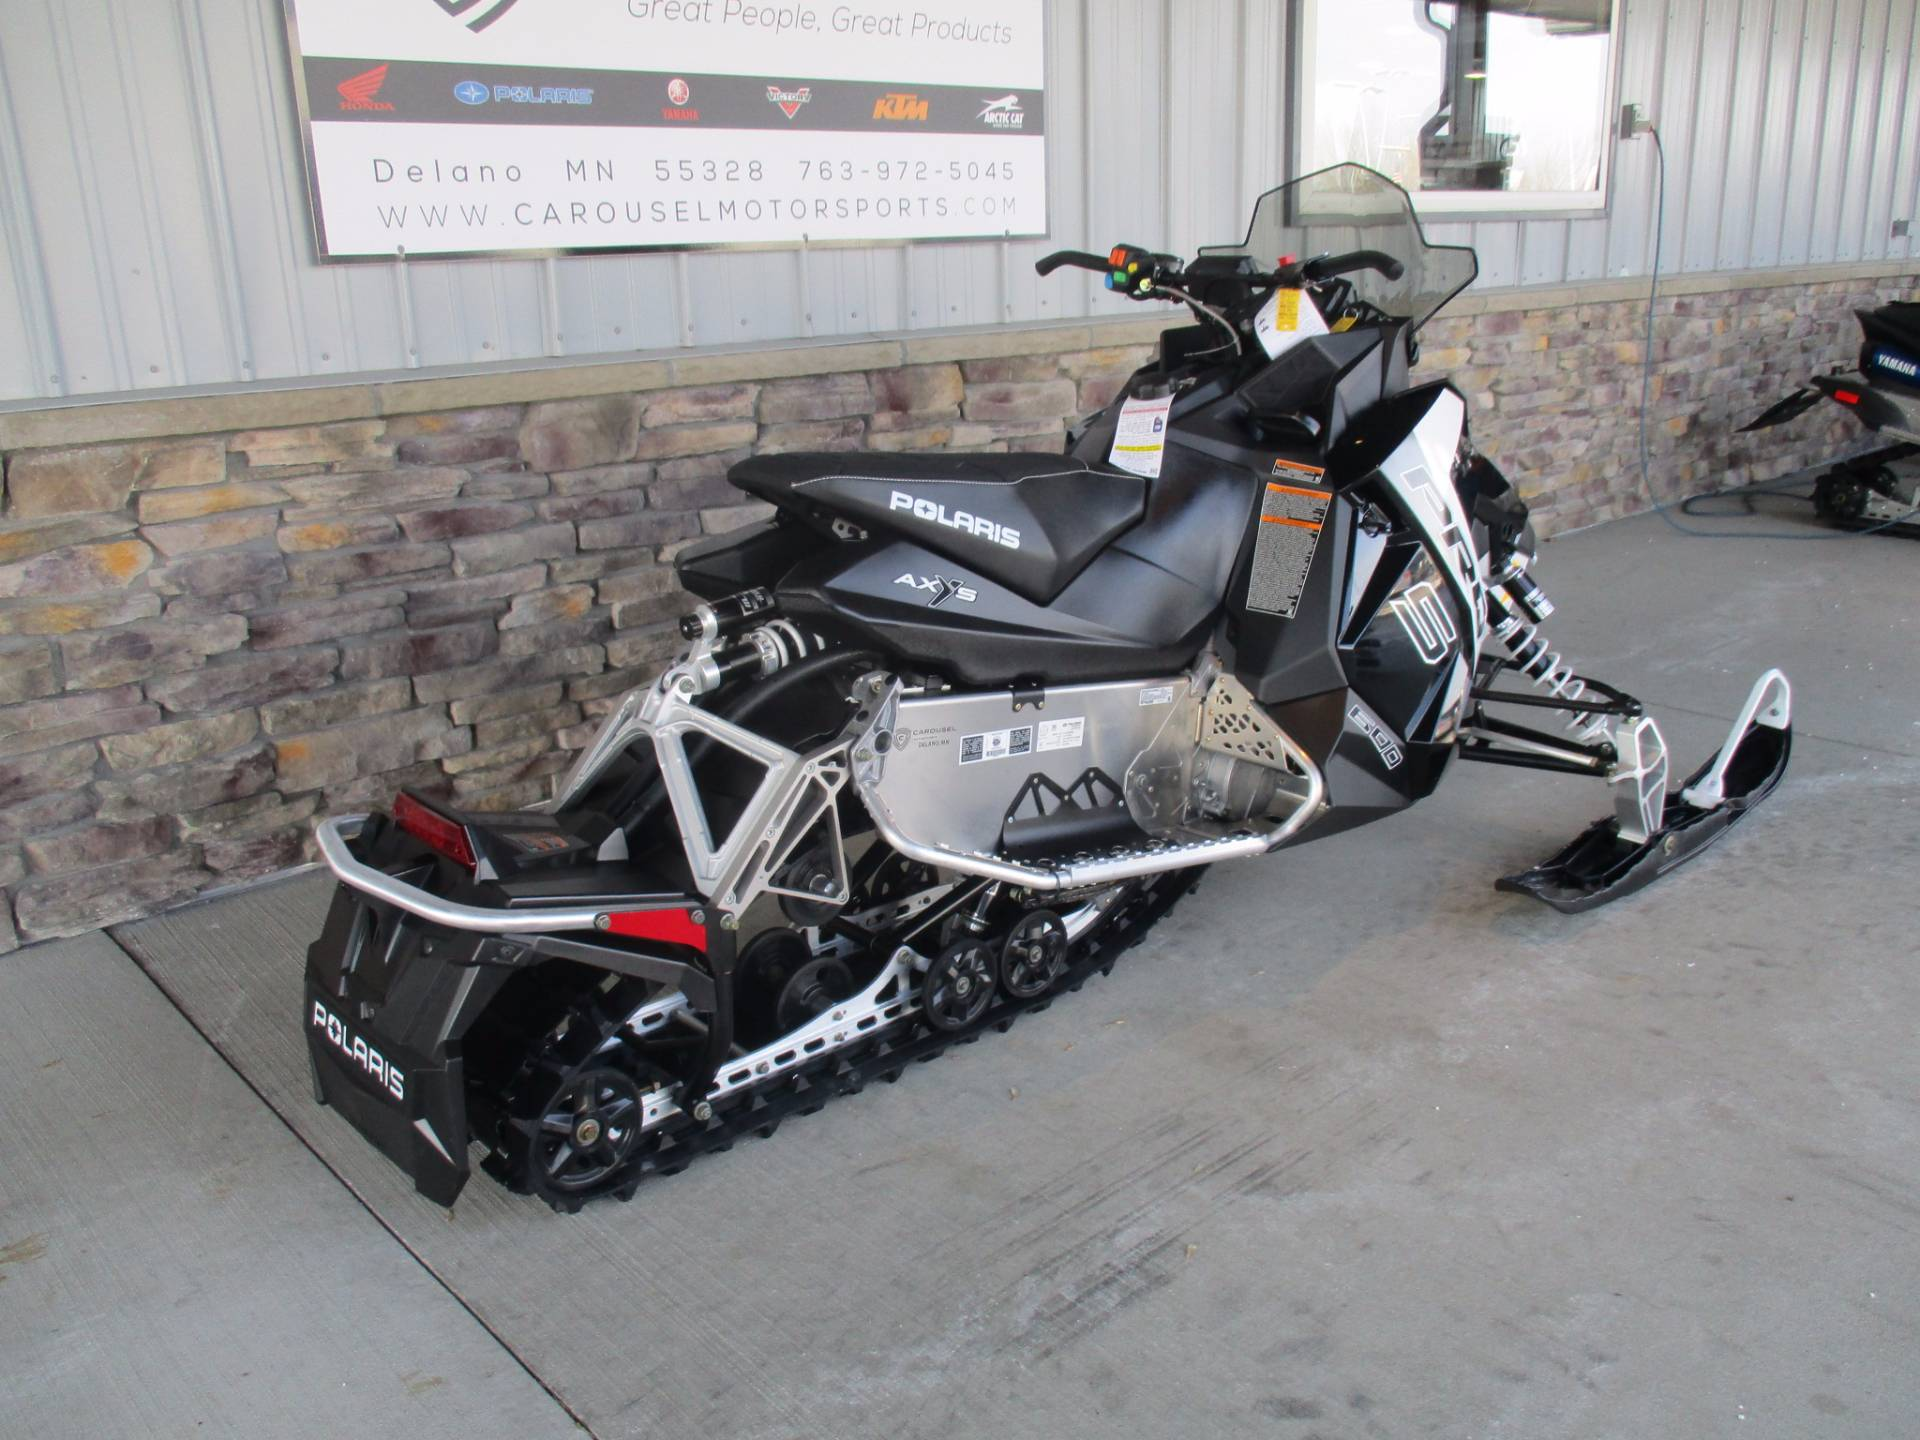 2017 Polaris 600 RUSH PRO-S in Delano, Minnesota